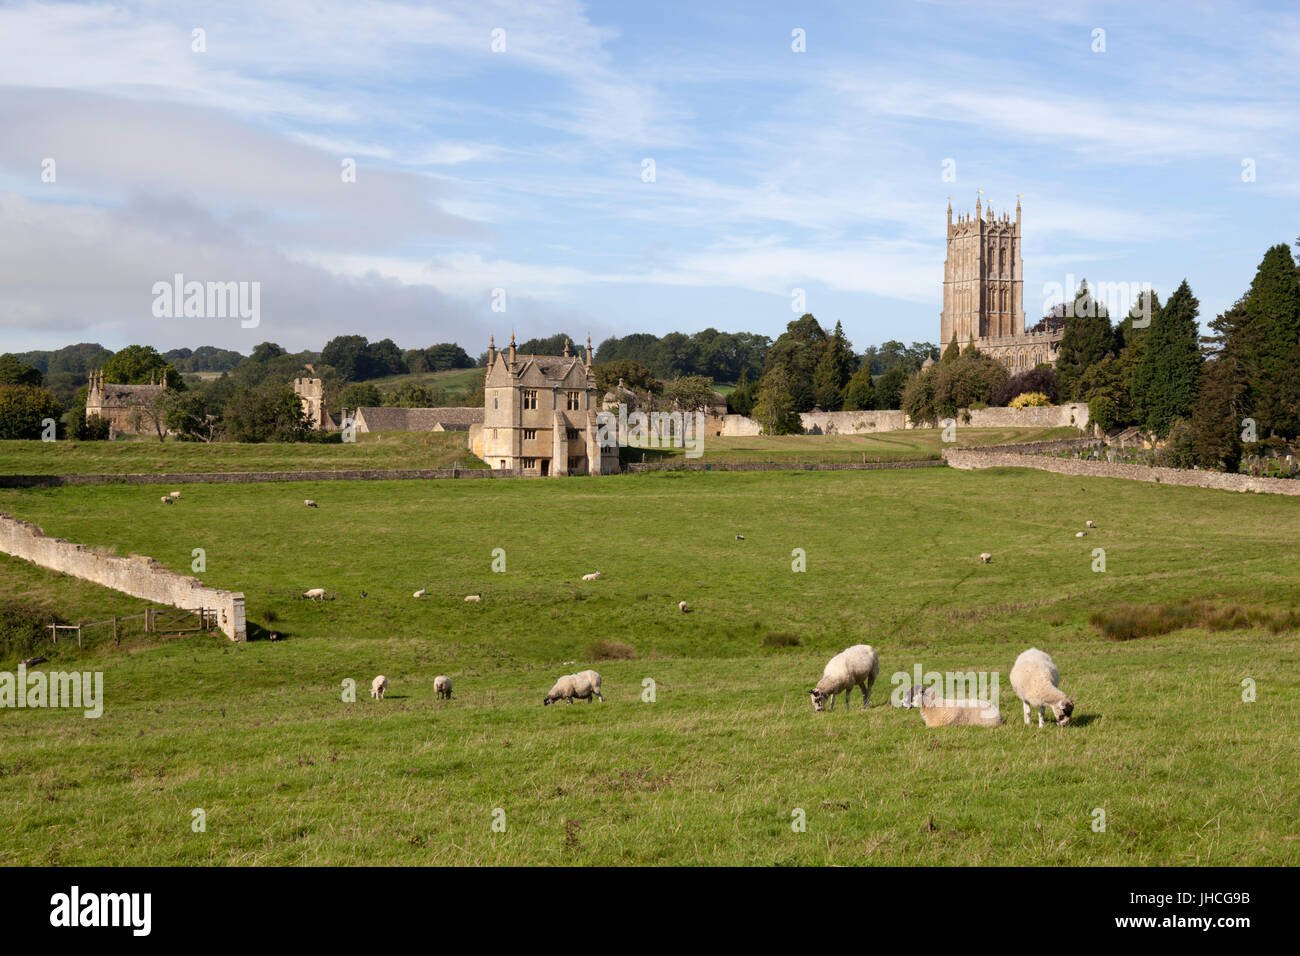 St James' Church and East Banqueting House of Campden House with grazing sheep, Chipping Campden, Cotswolds, - Stock Image